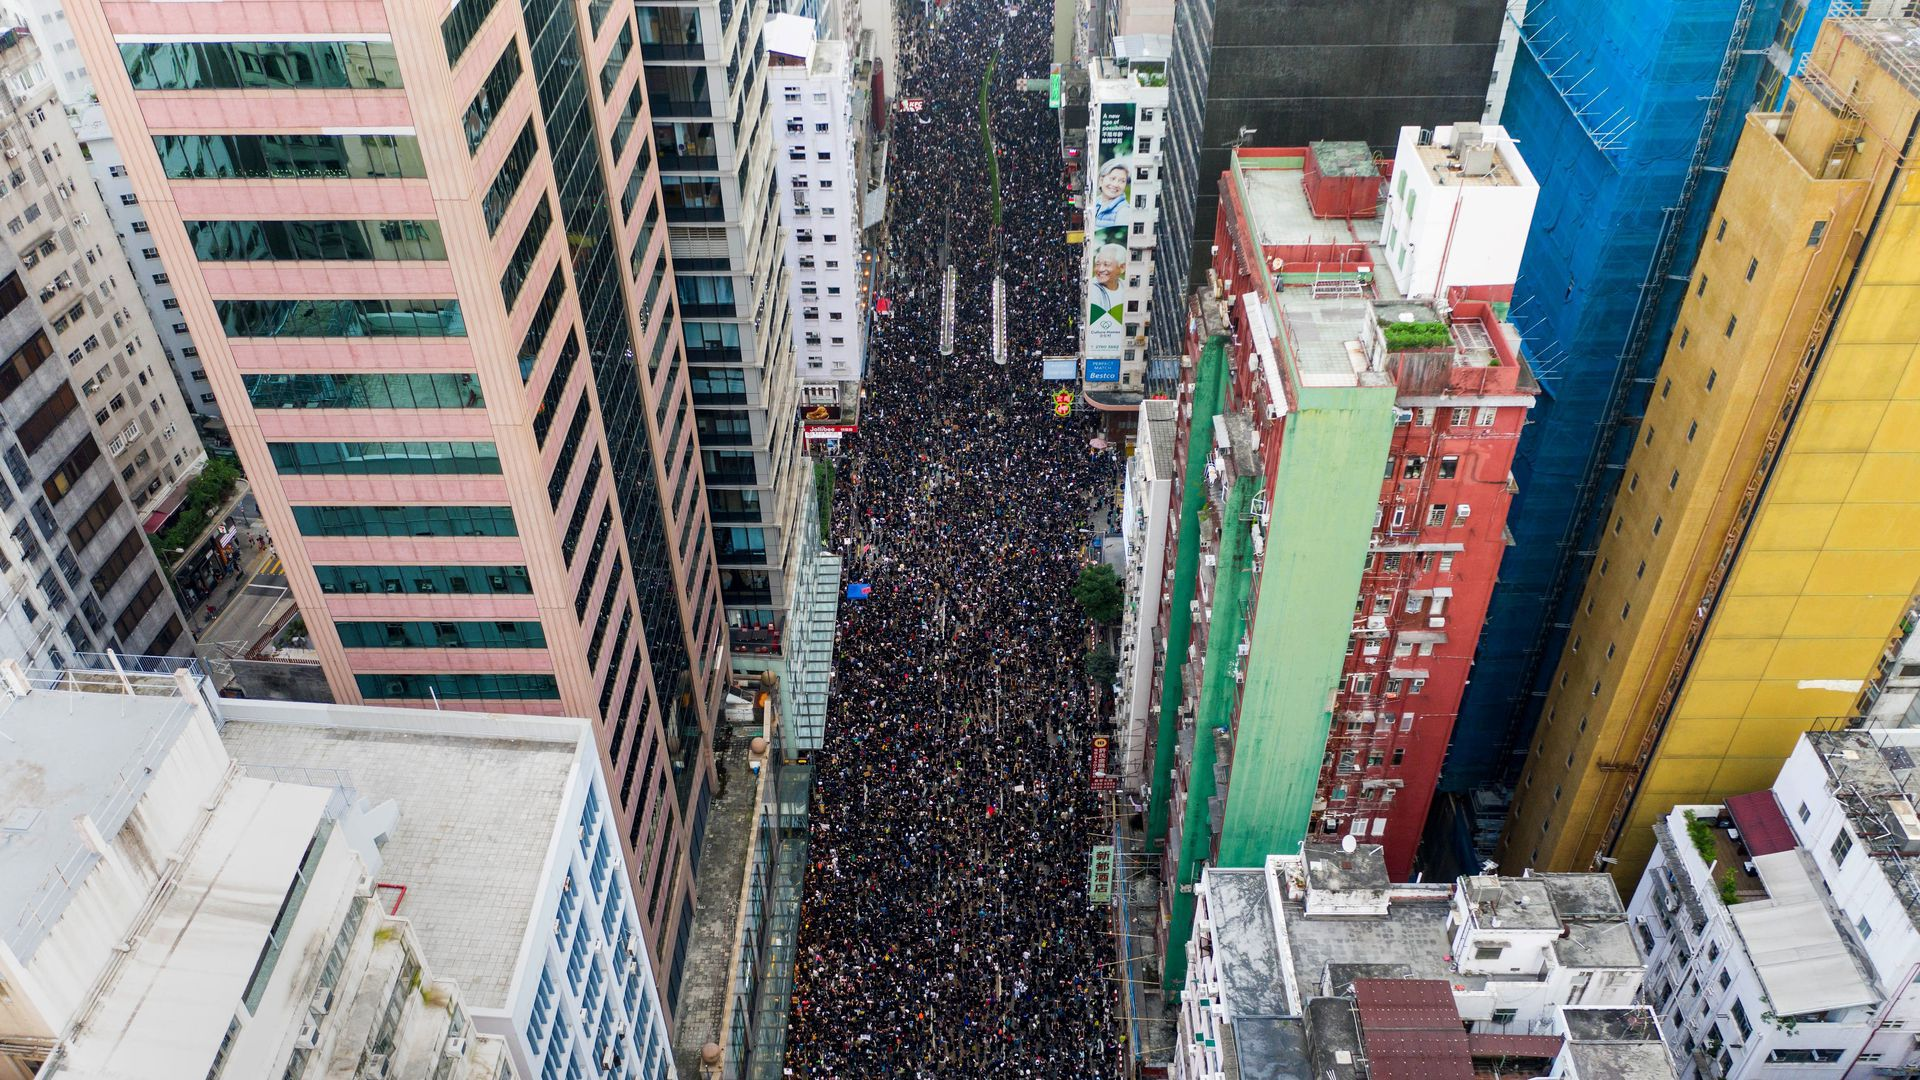 Mass protests in Hong Kong